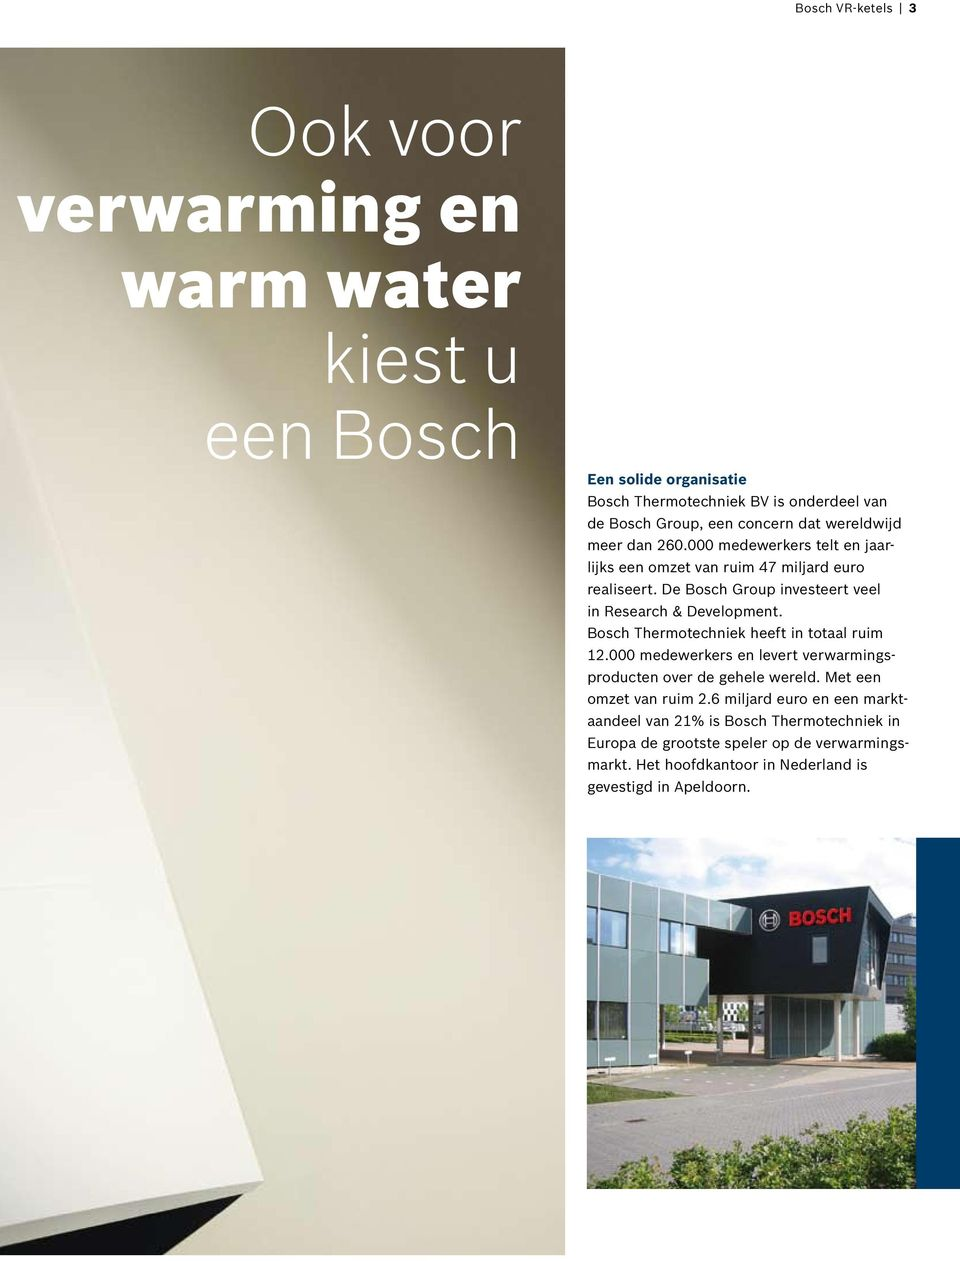 De Bosch Group investeert veel in Research & Development. Bosch Thermotechniek heeft in totaal ruim 12.